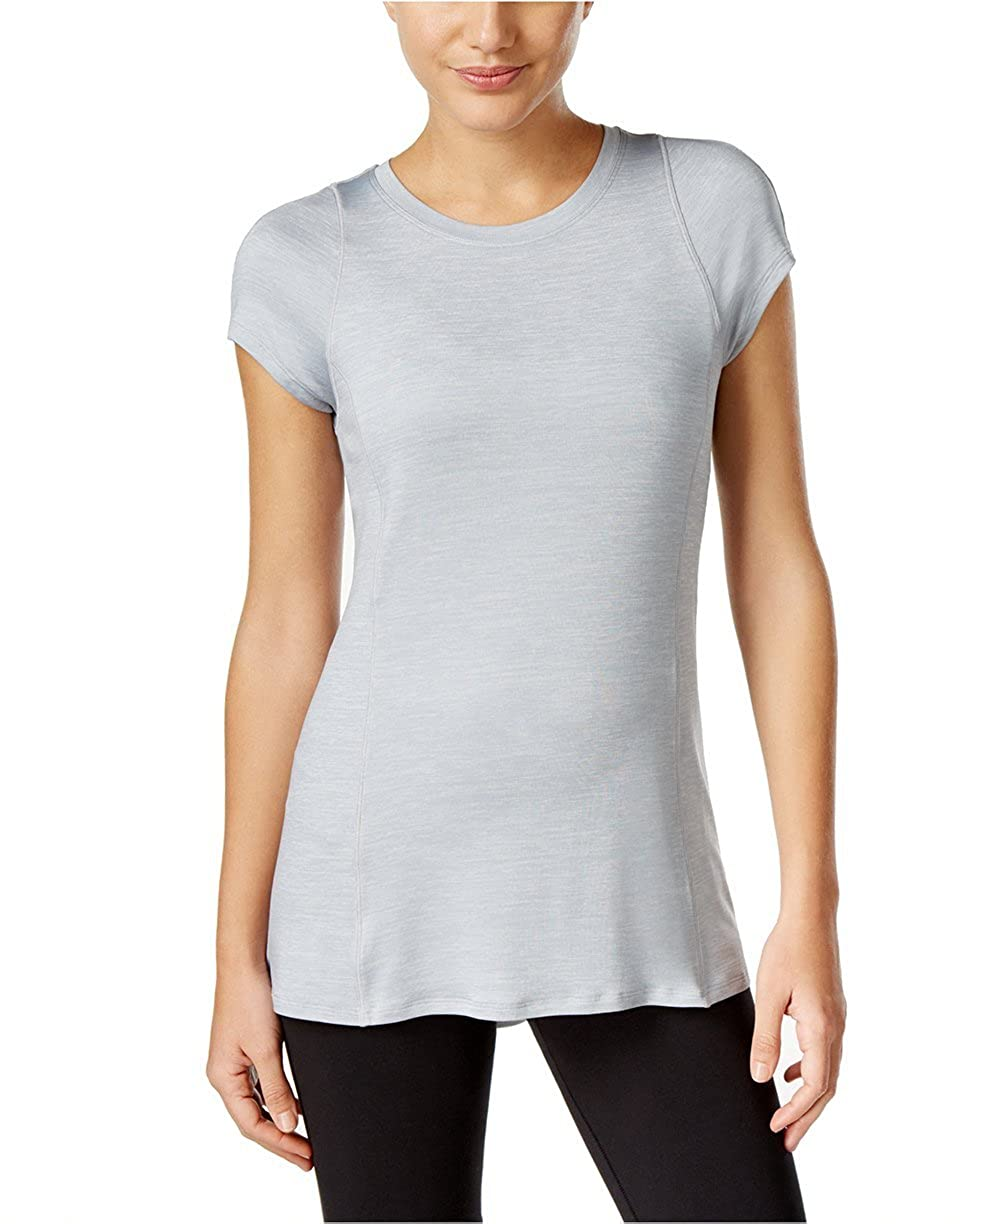 afbfab17 Calvin Klein Performance Women's Pleated-Back Top at Amazon Women's  Clothing store: